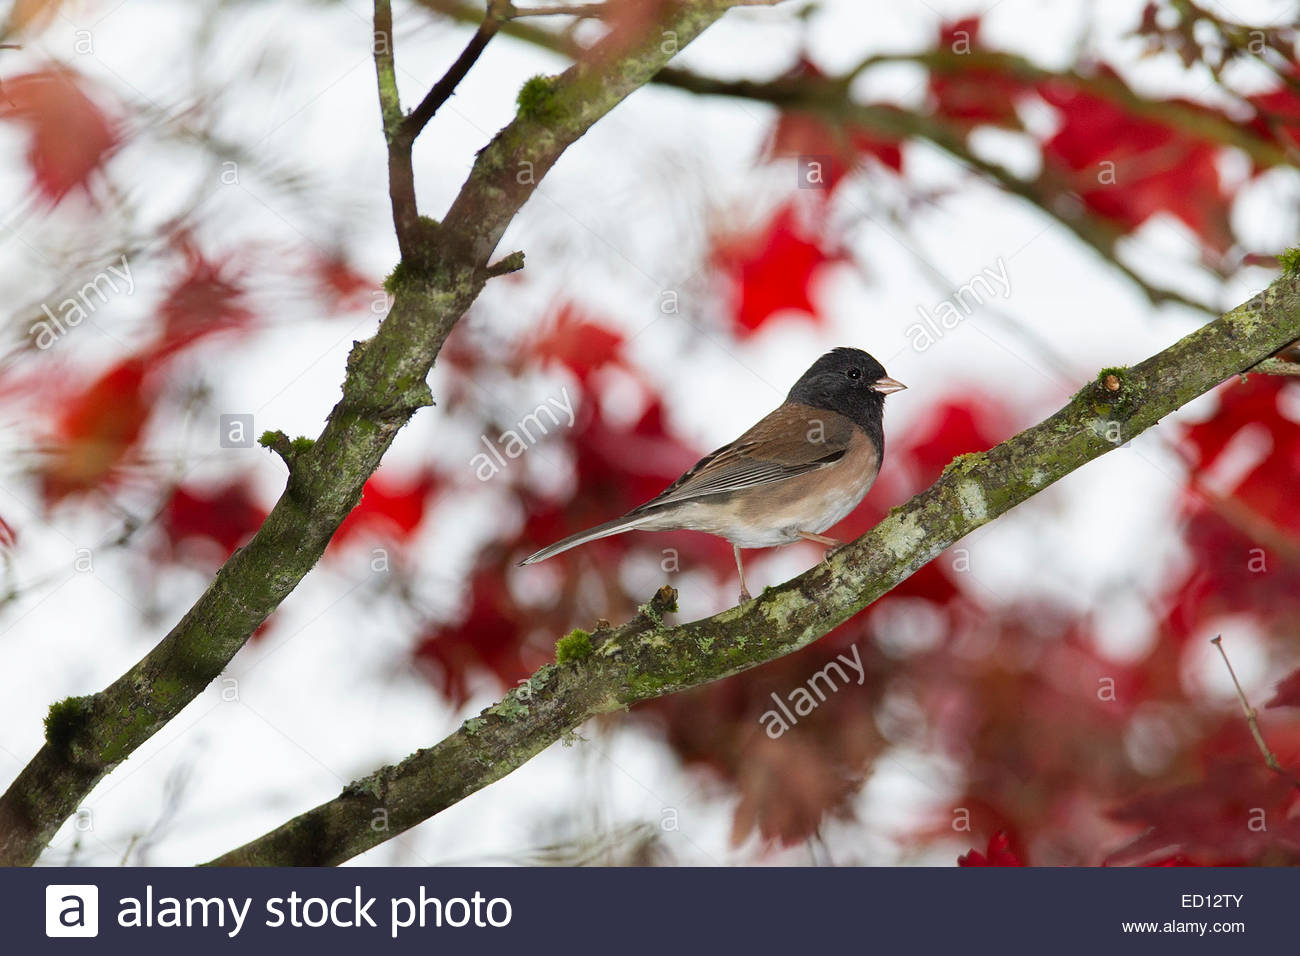 A male Oregon junco (Junco hyemalis simillimus) rests on a maple tree that's displaying its red fall color. - Stock Image